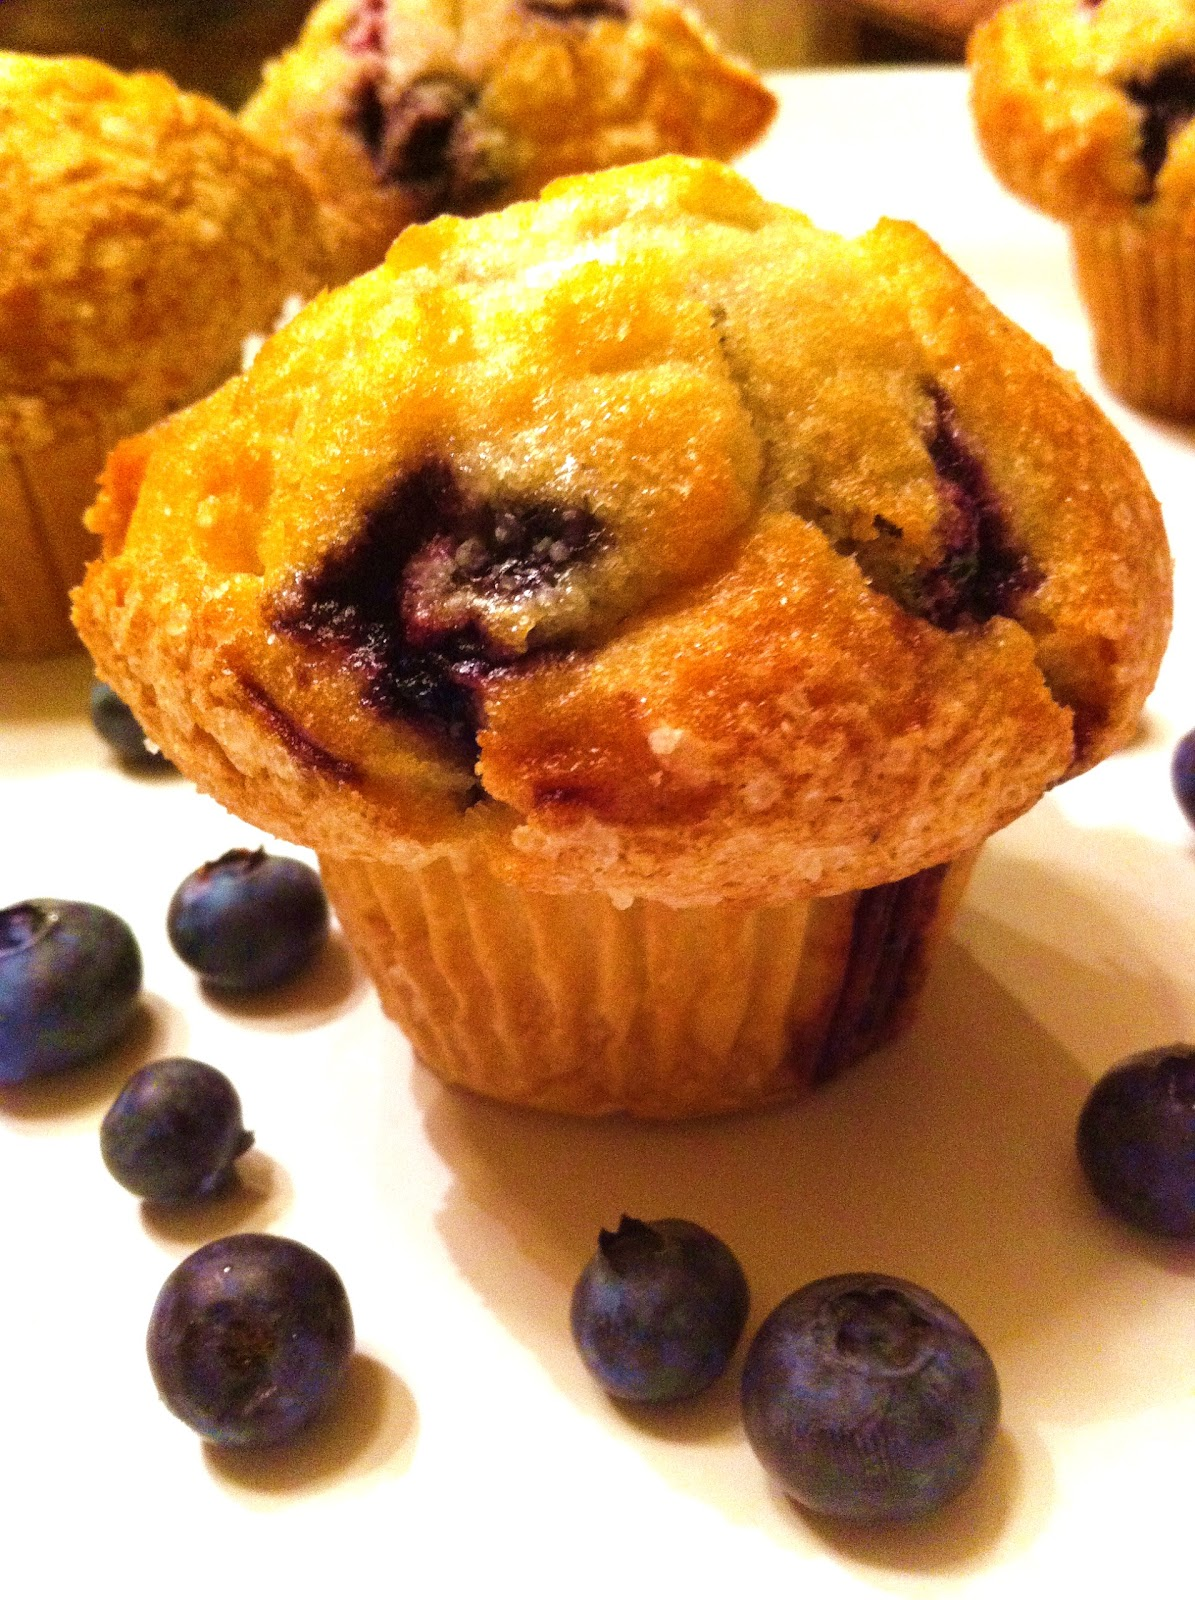 Cooking The Amazing: BUTTERMILK BLUEBERRY MUFFINS - photo#18